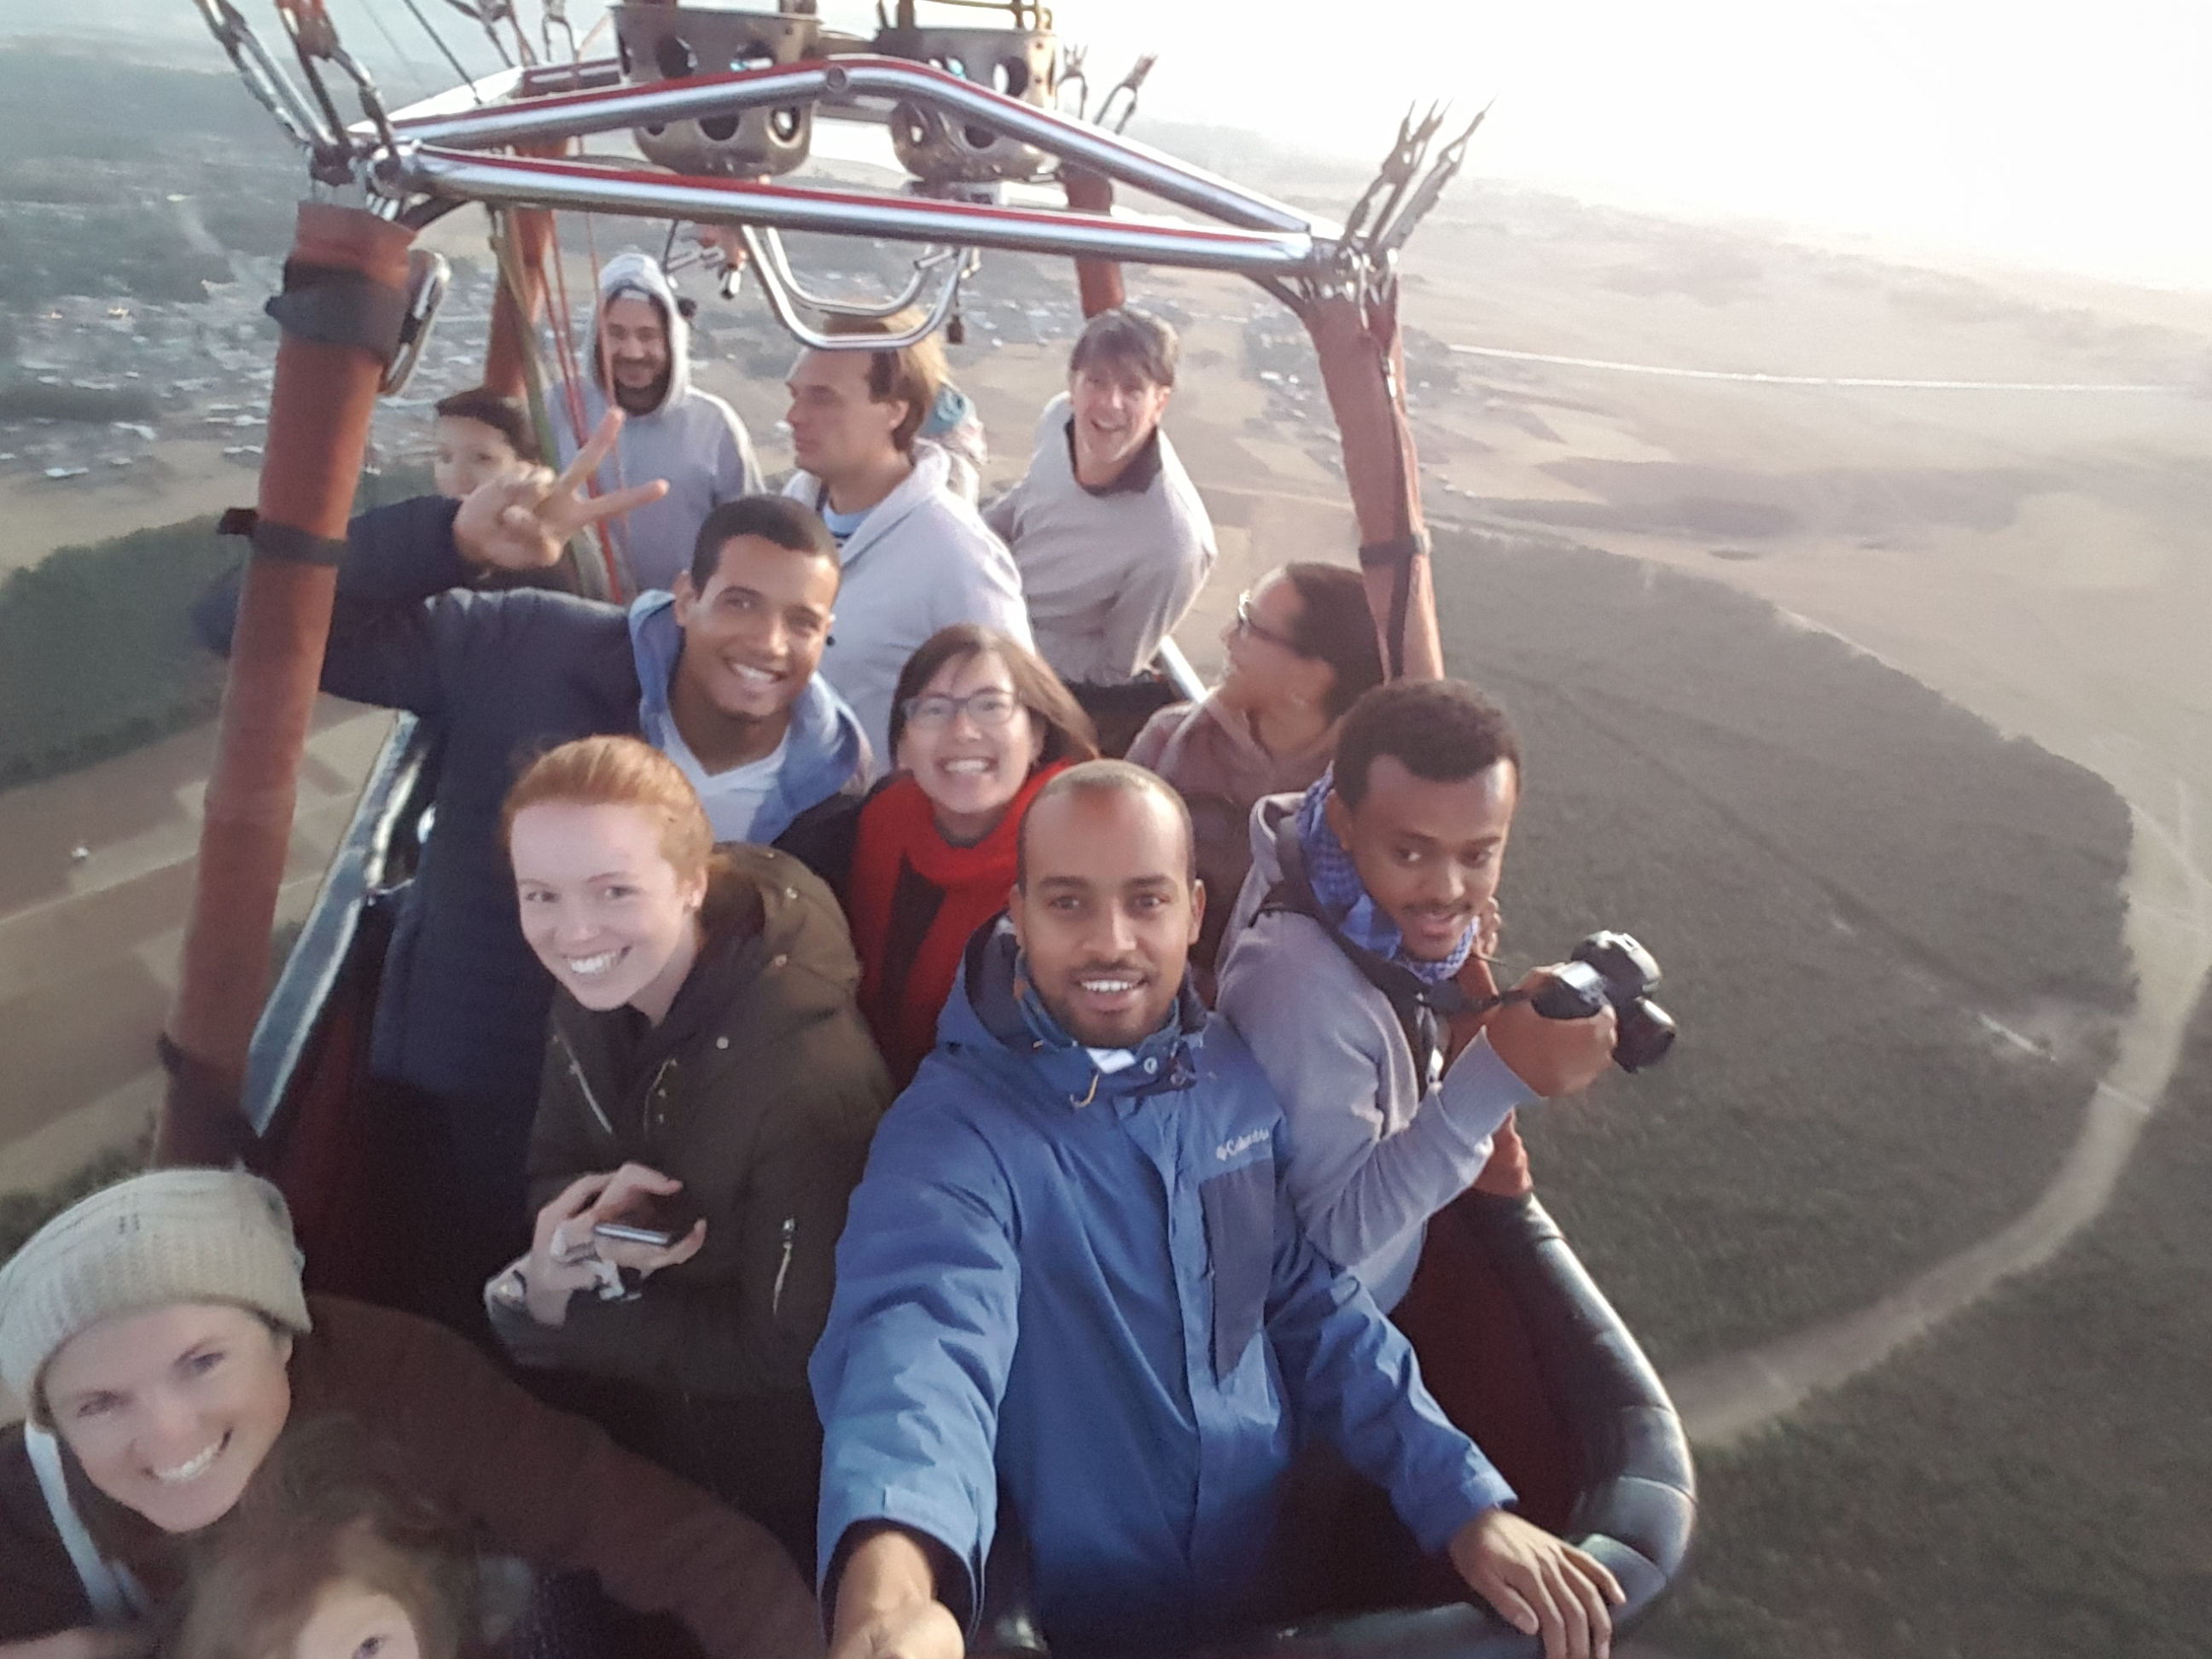 Sunrise balloon flight Addis Ababa Friday 9 October 2020: program 05.00 to 09.00 AM